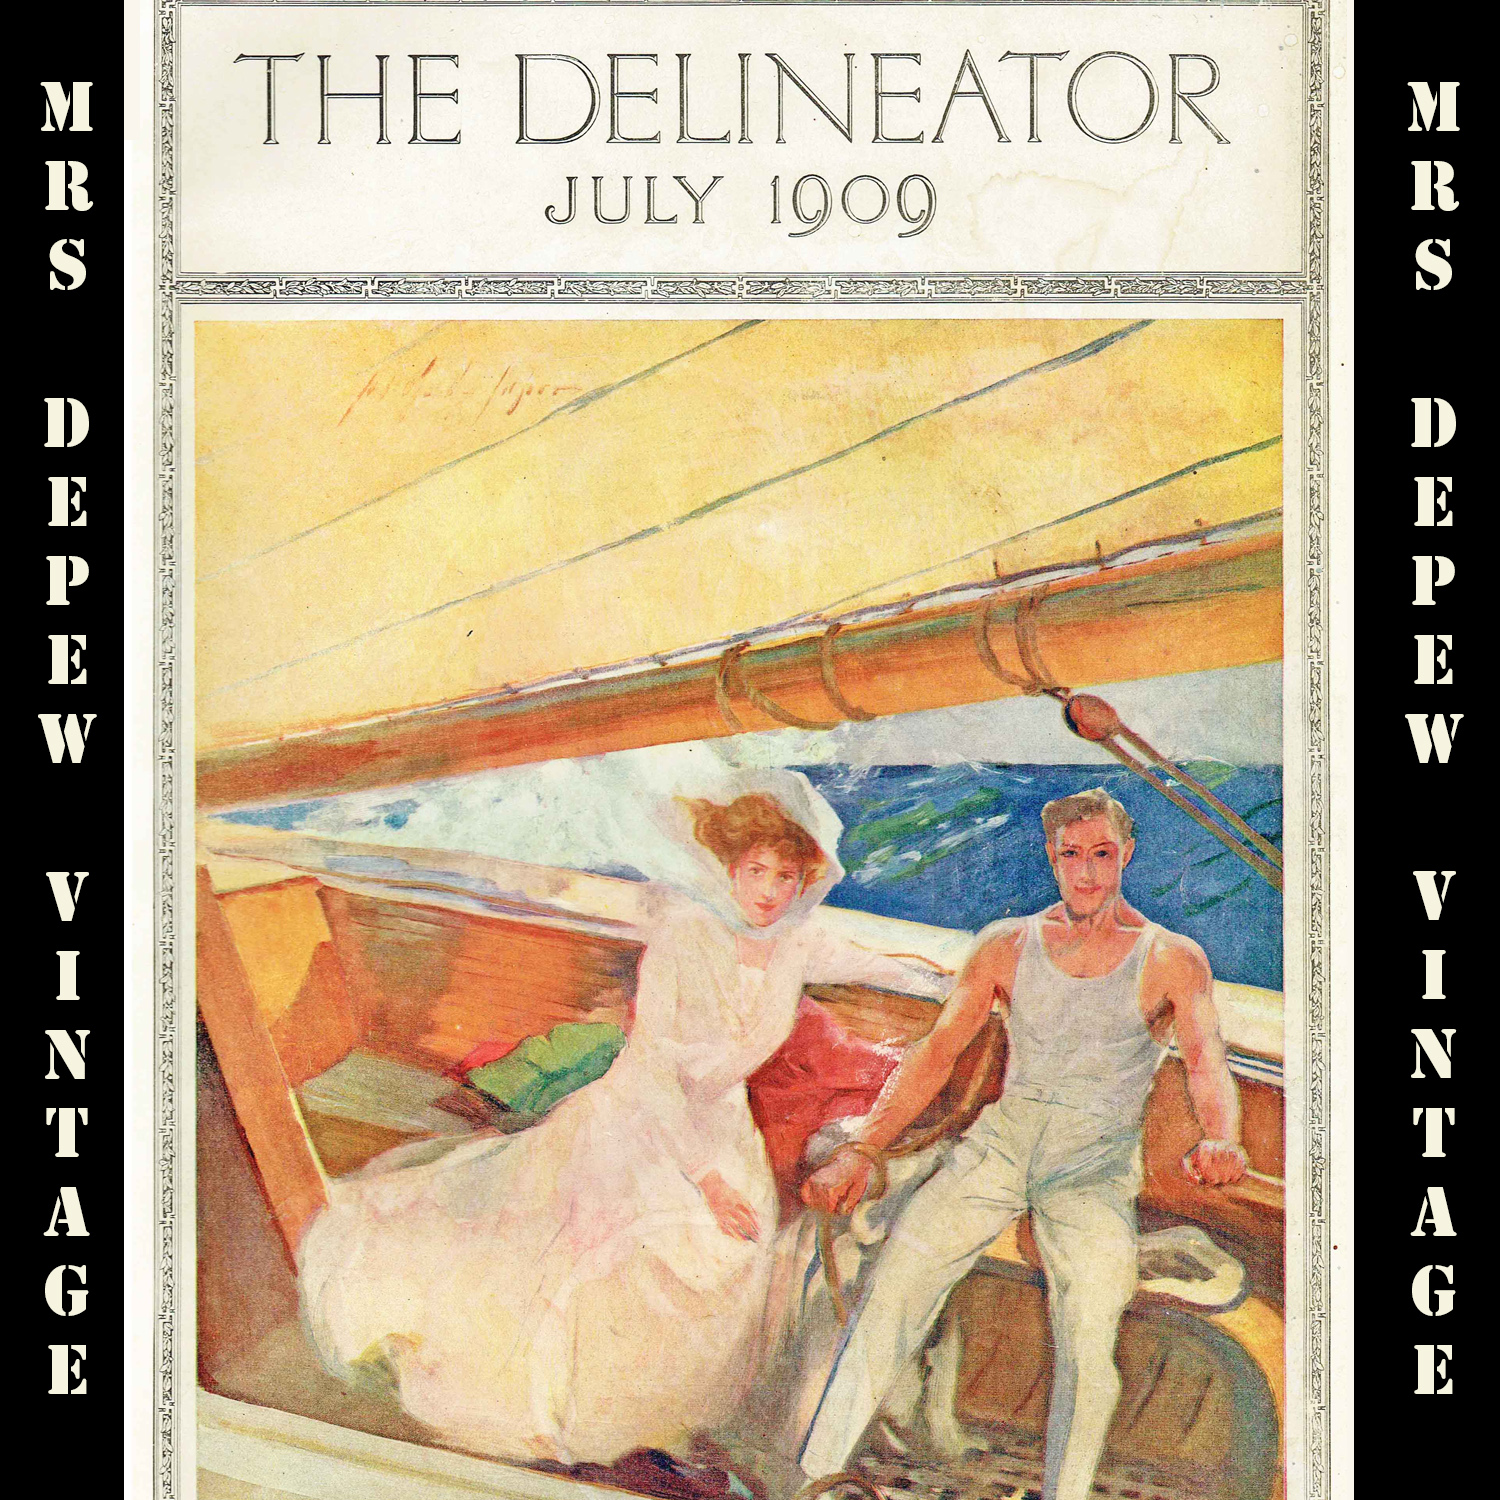 The Delineator July 1909